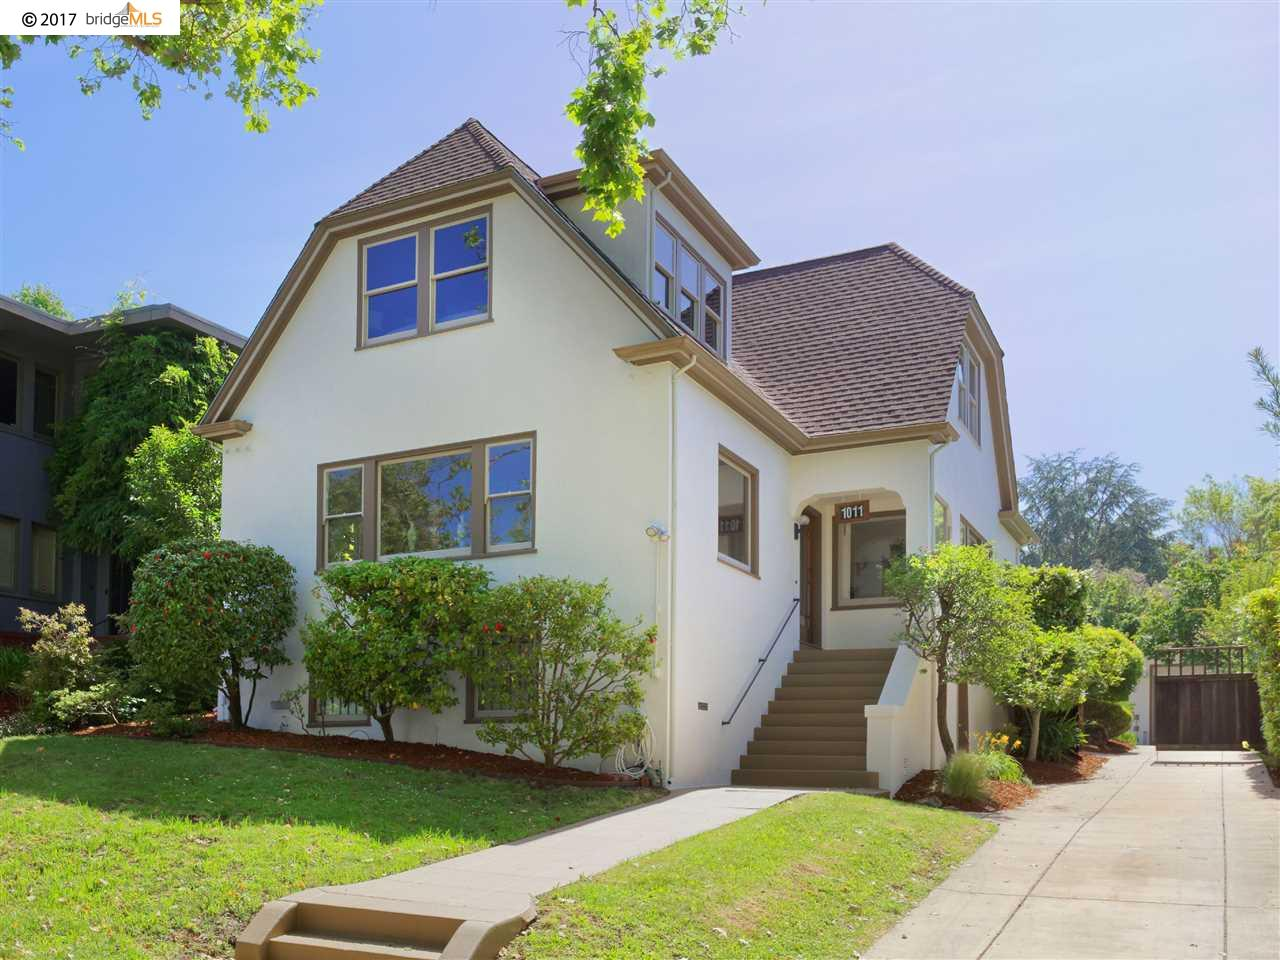 1011 Mariposa Ave | BERKELEY | 2032 | 94707